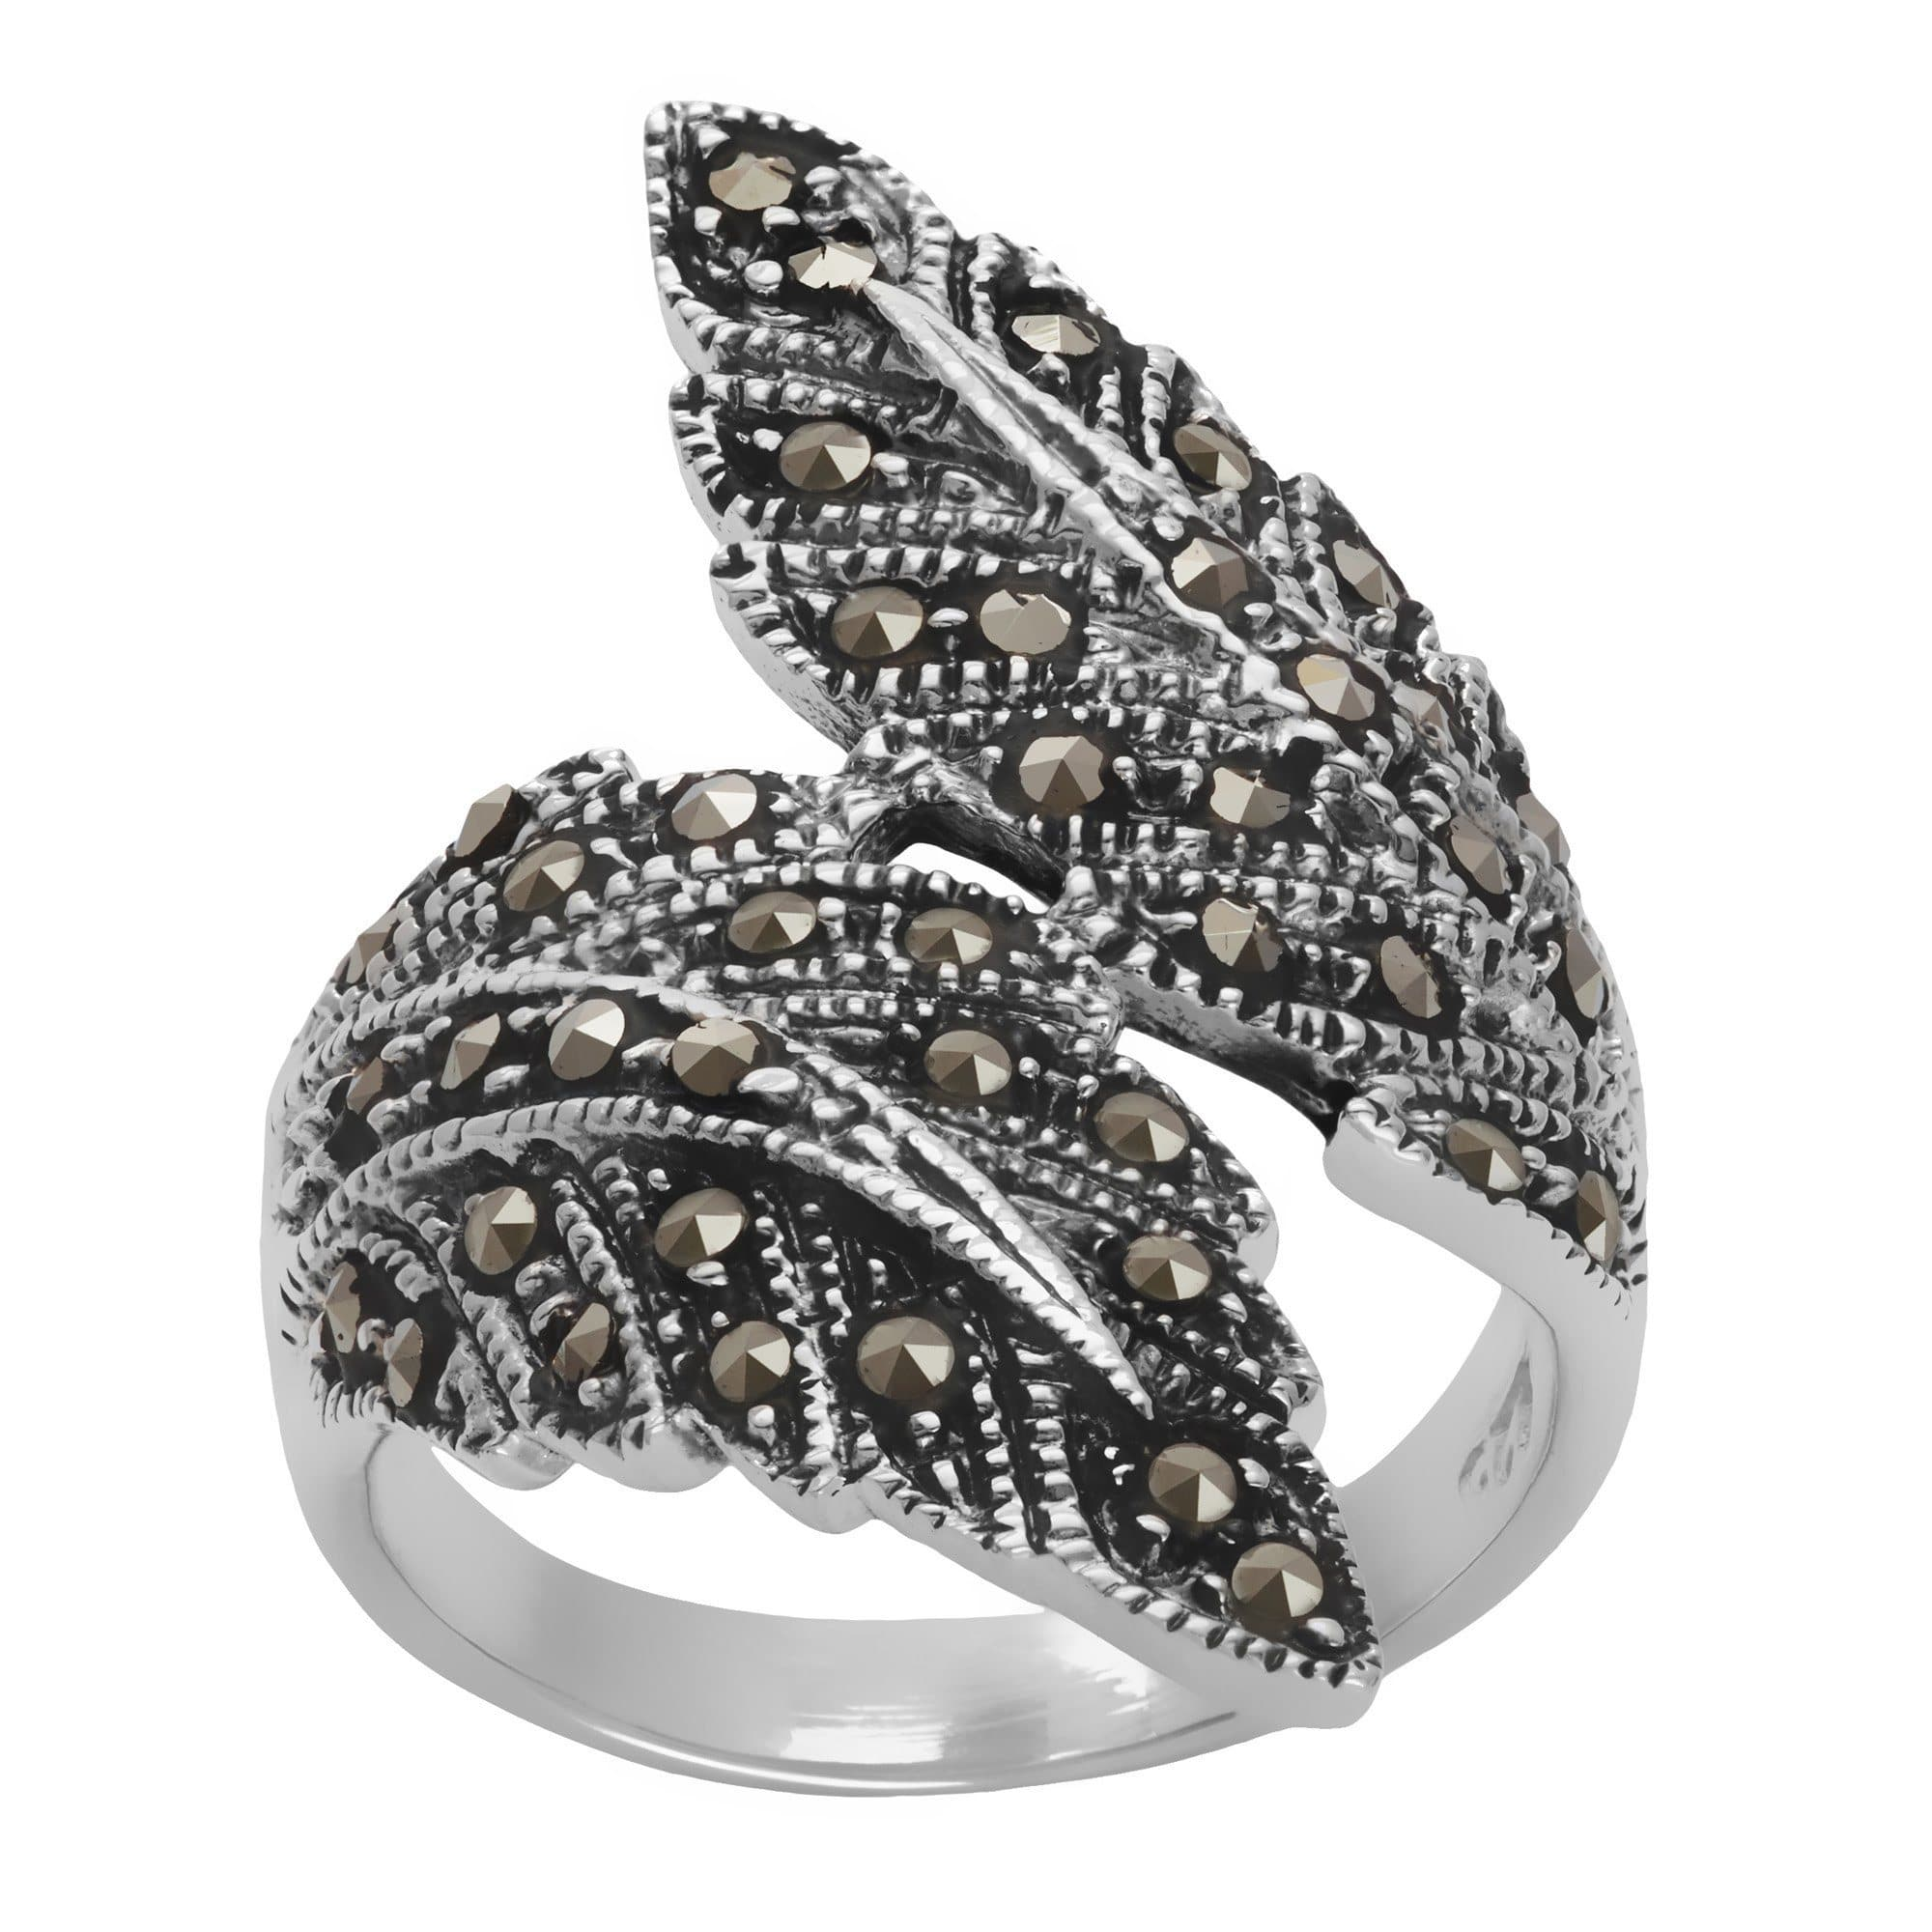 silverlust silver rings ring and sterling jewelry fine product marcasite poison